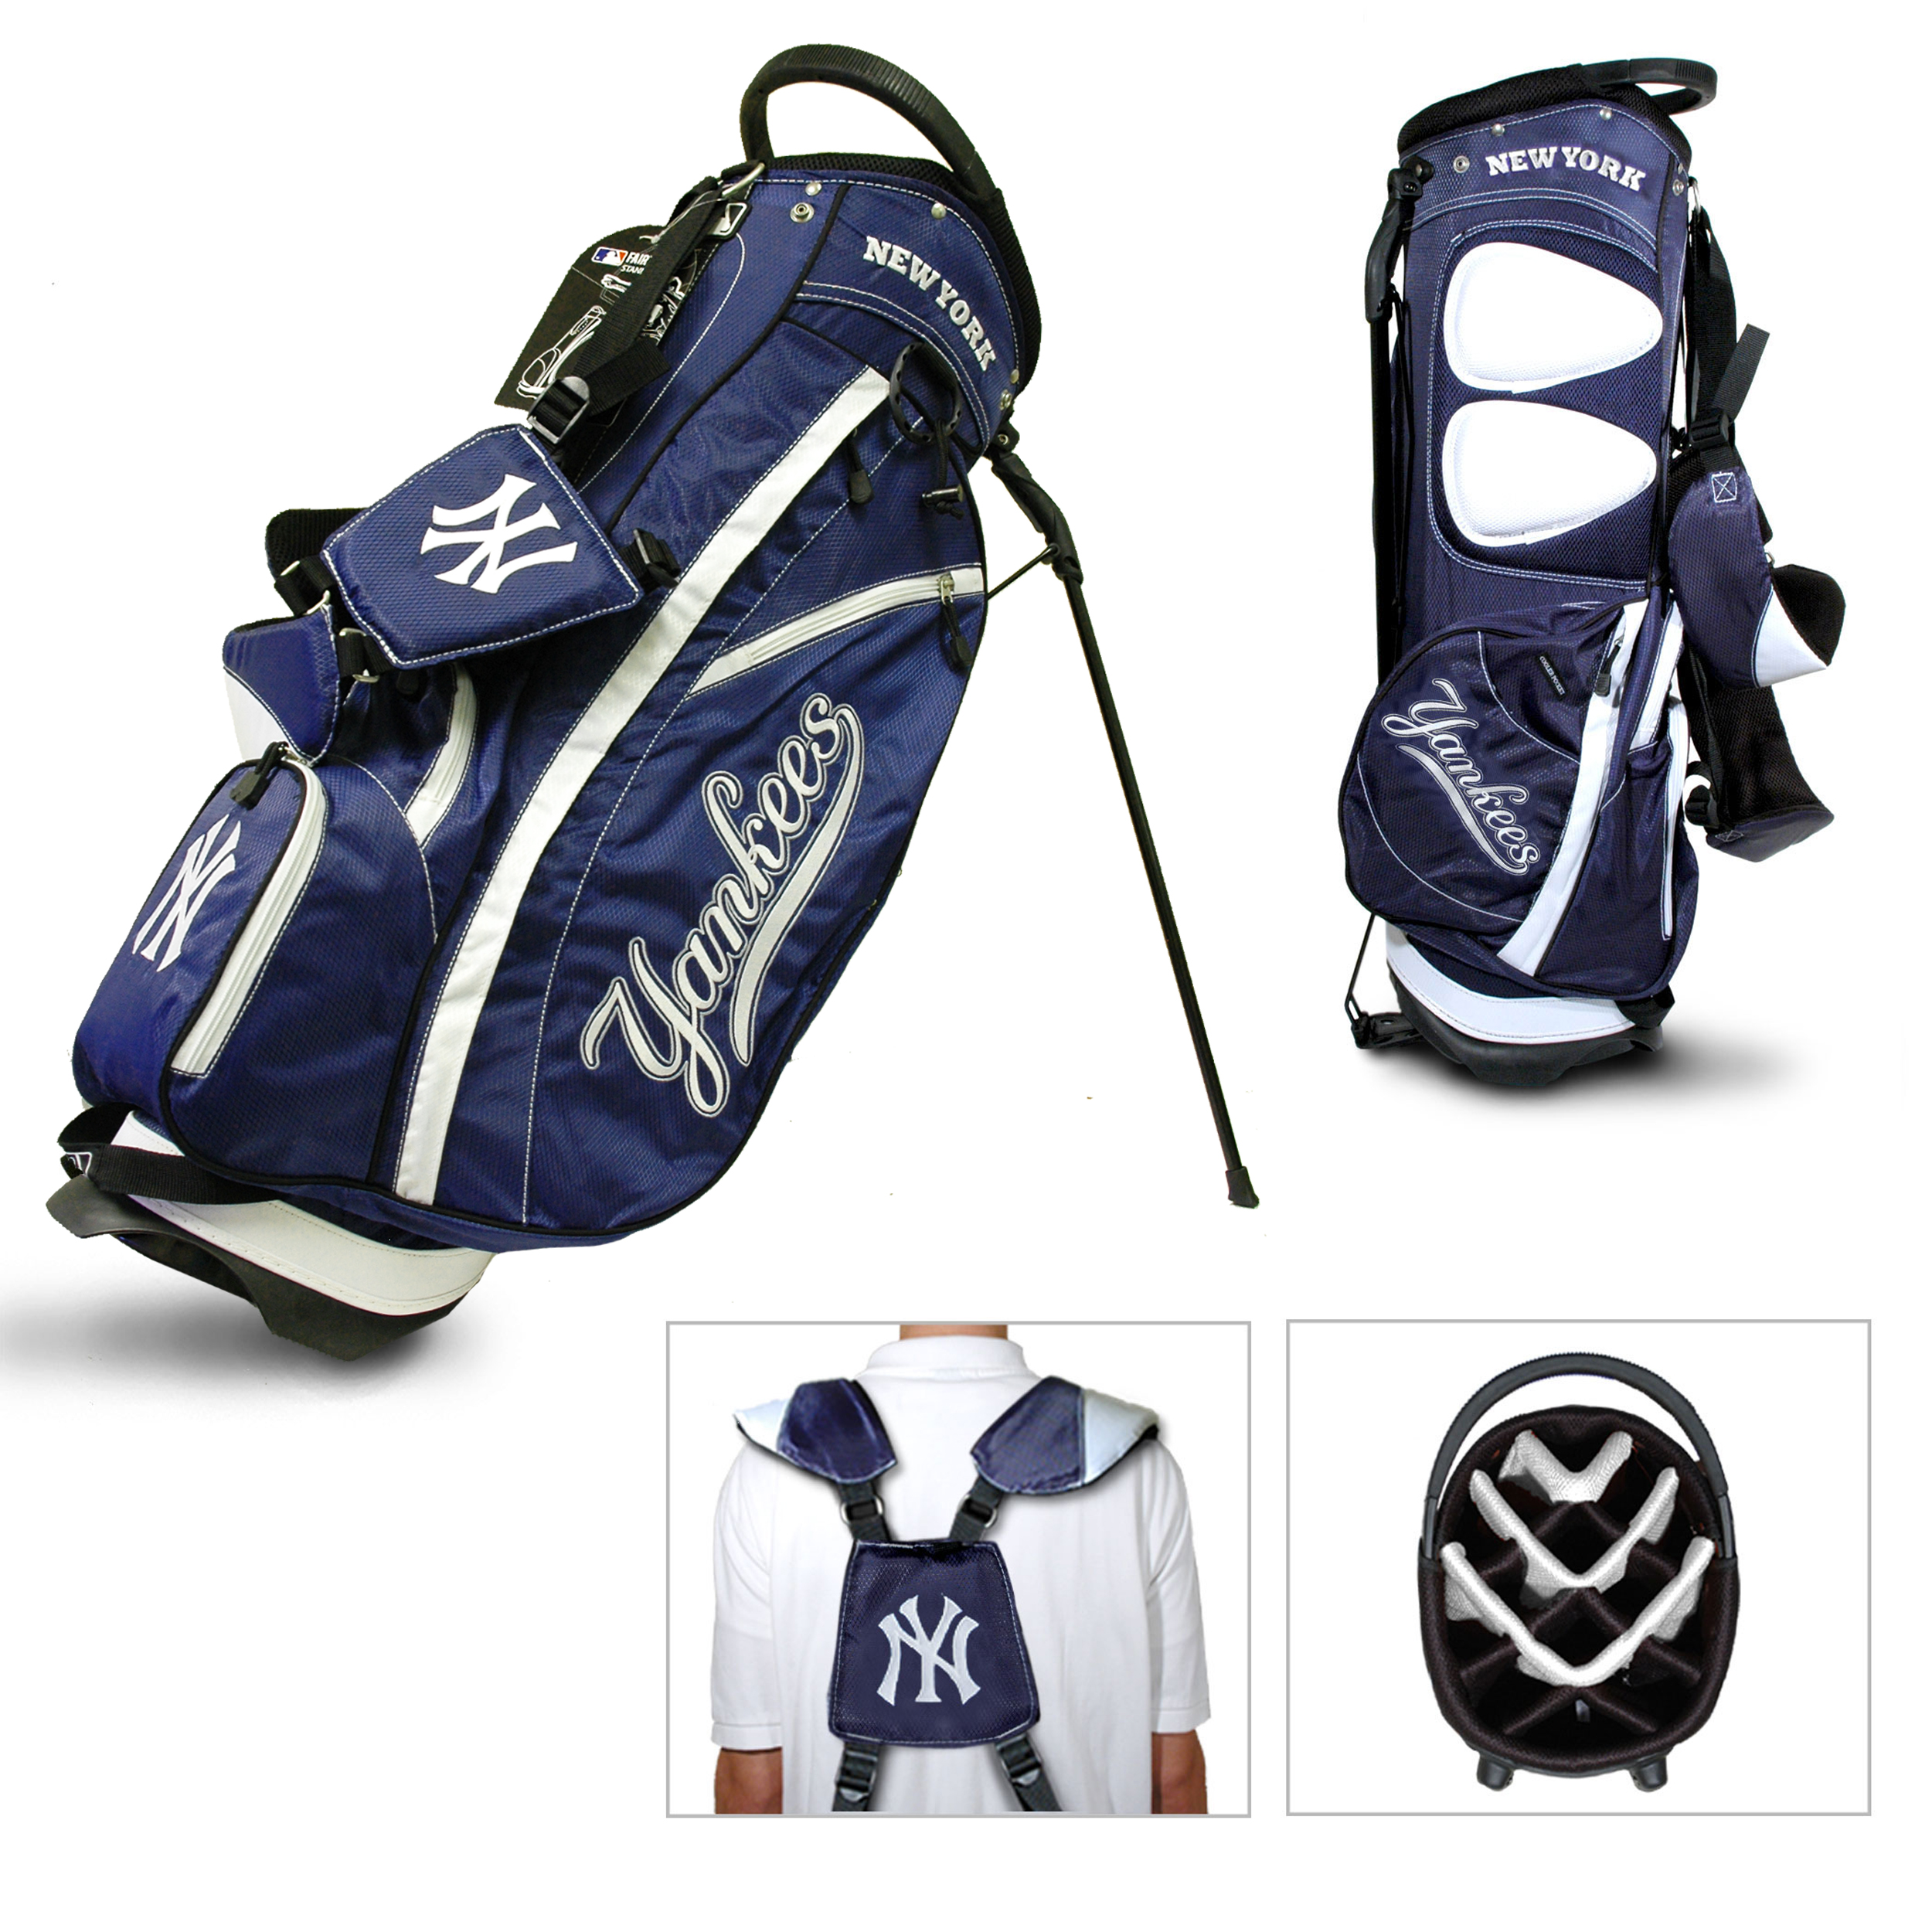 York New Yankees Golf